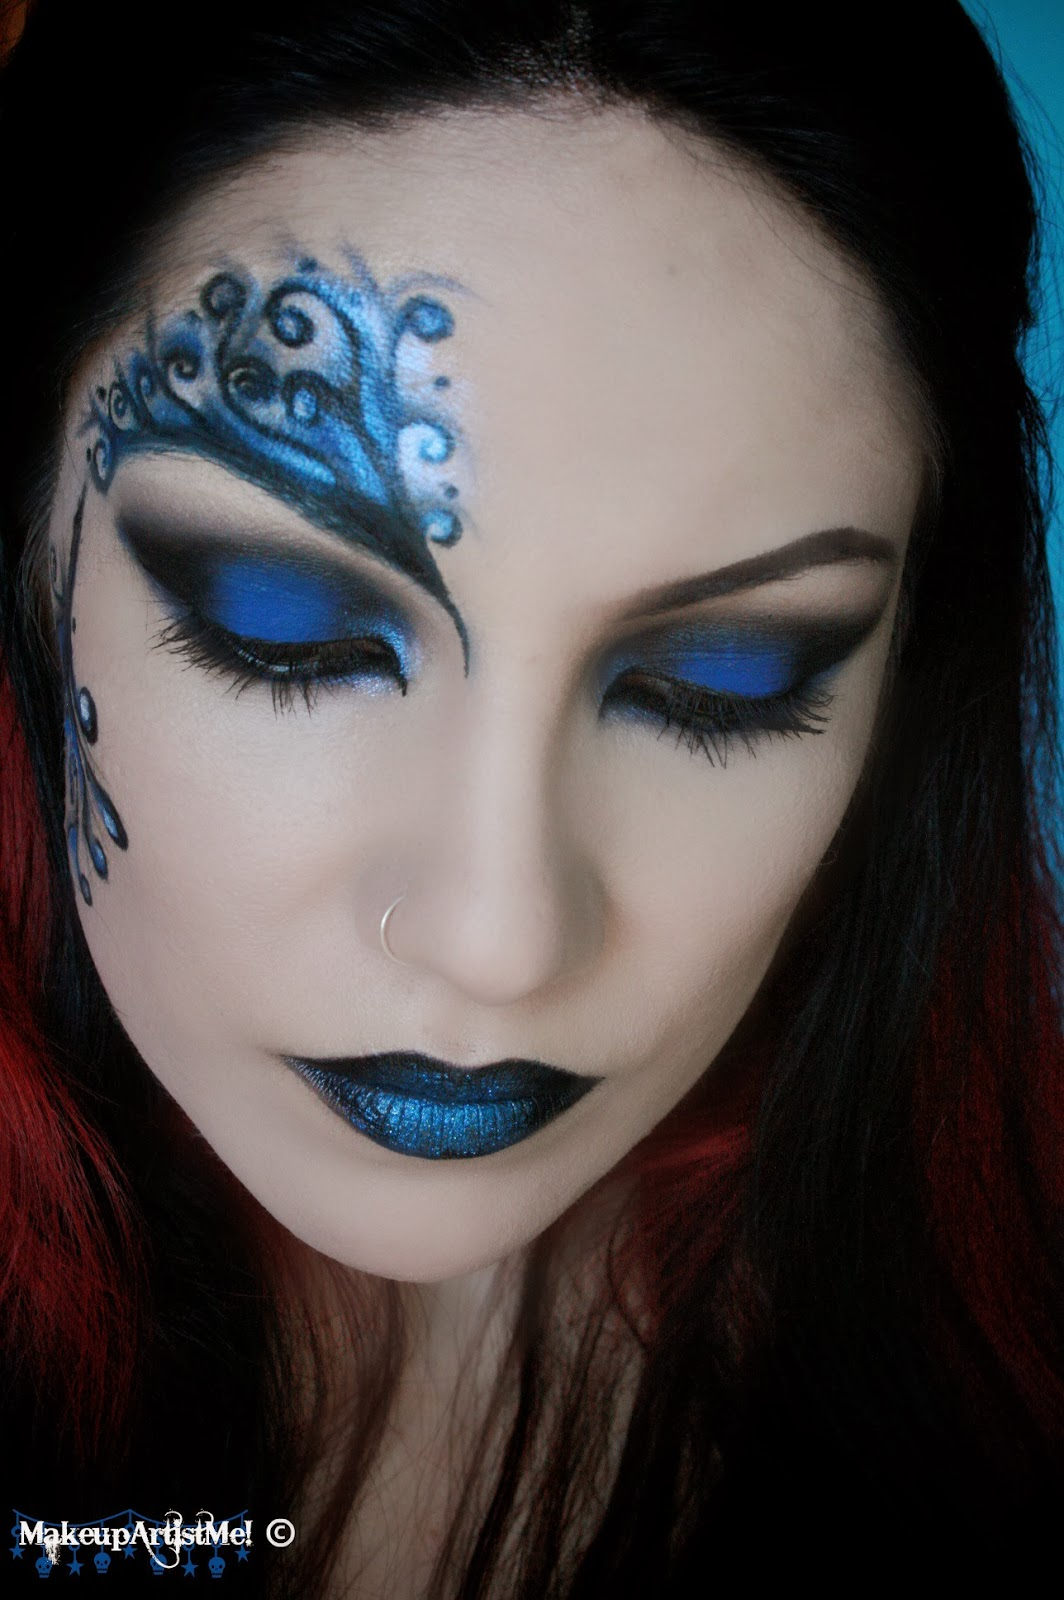 Make Up Application: Make-up Artist Me!: Blue Secret- Blue Masquerade Makeup